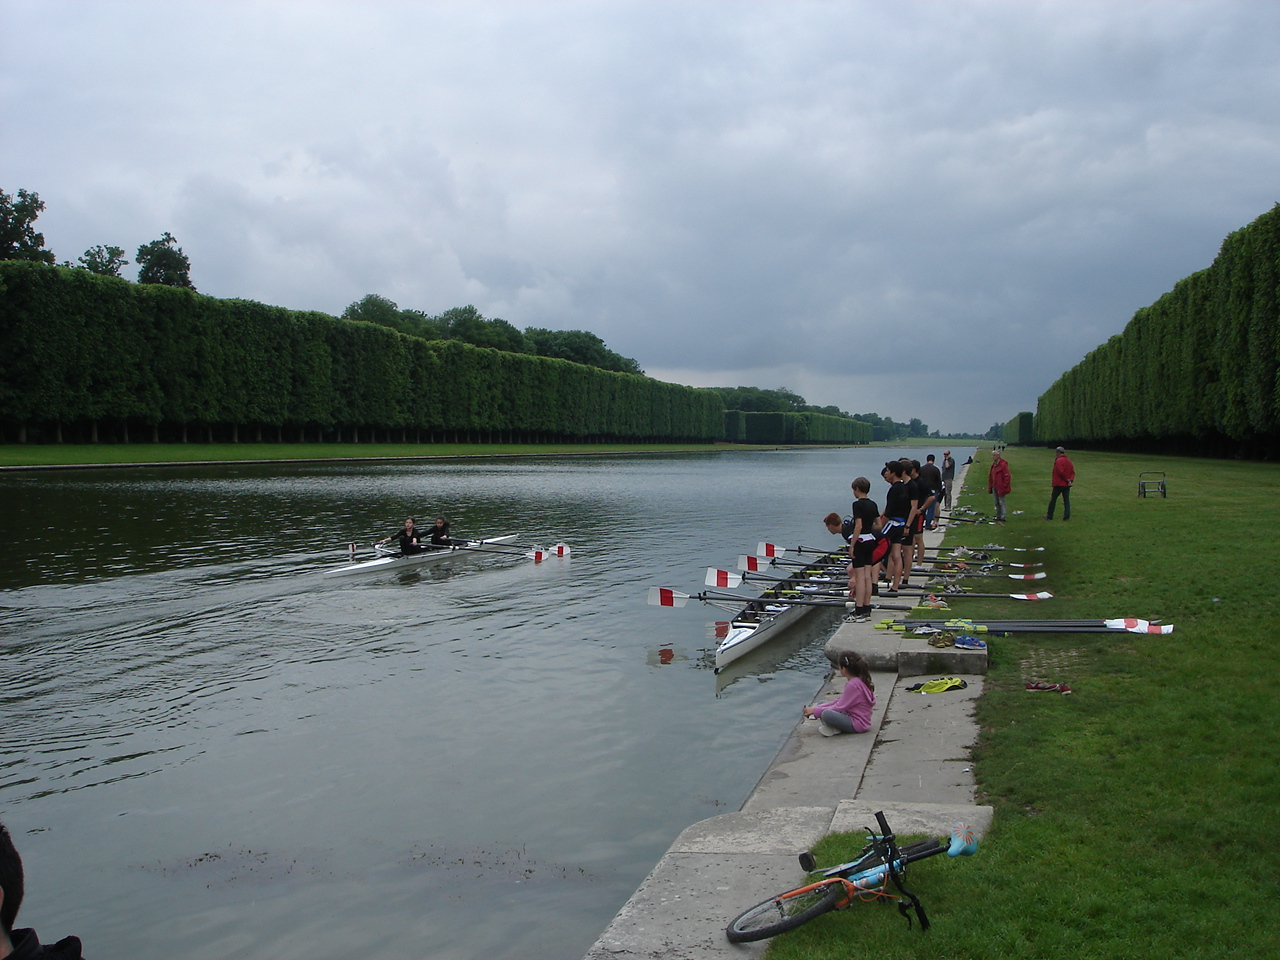 a half-mile rowing track at the gardens of Versailles